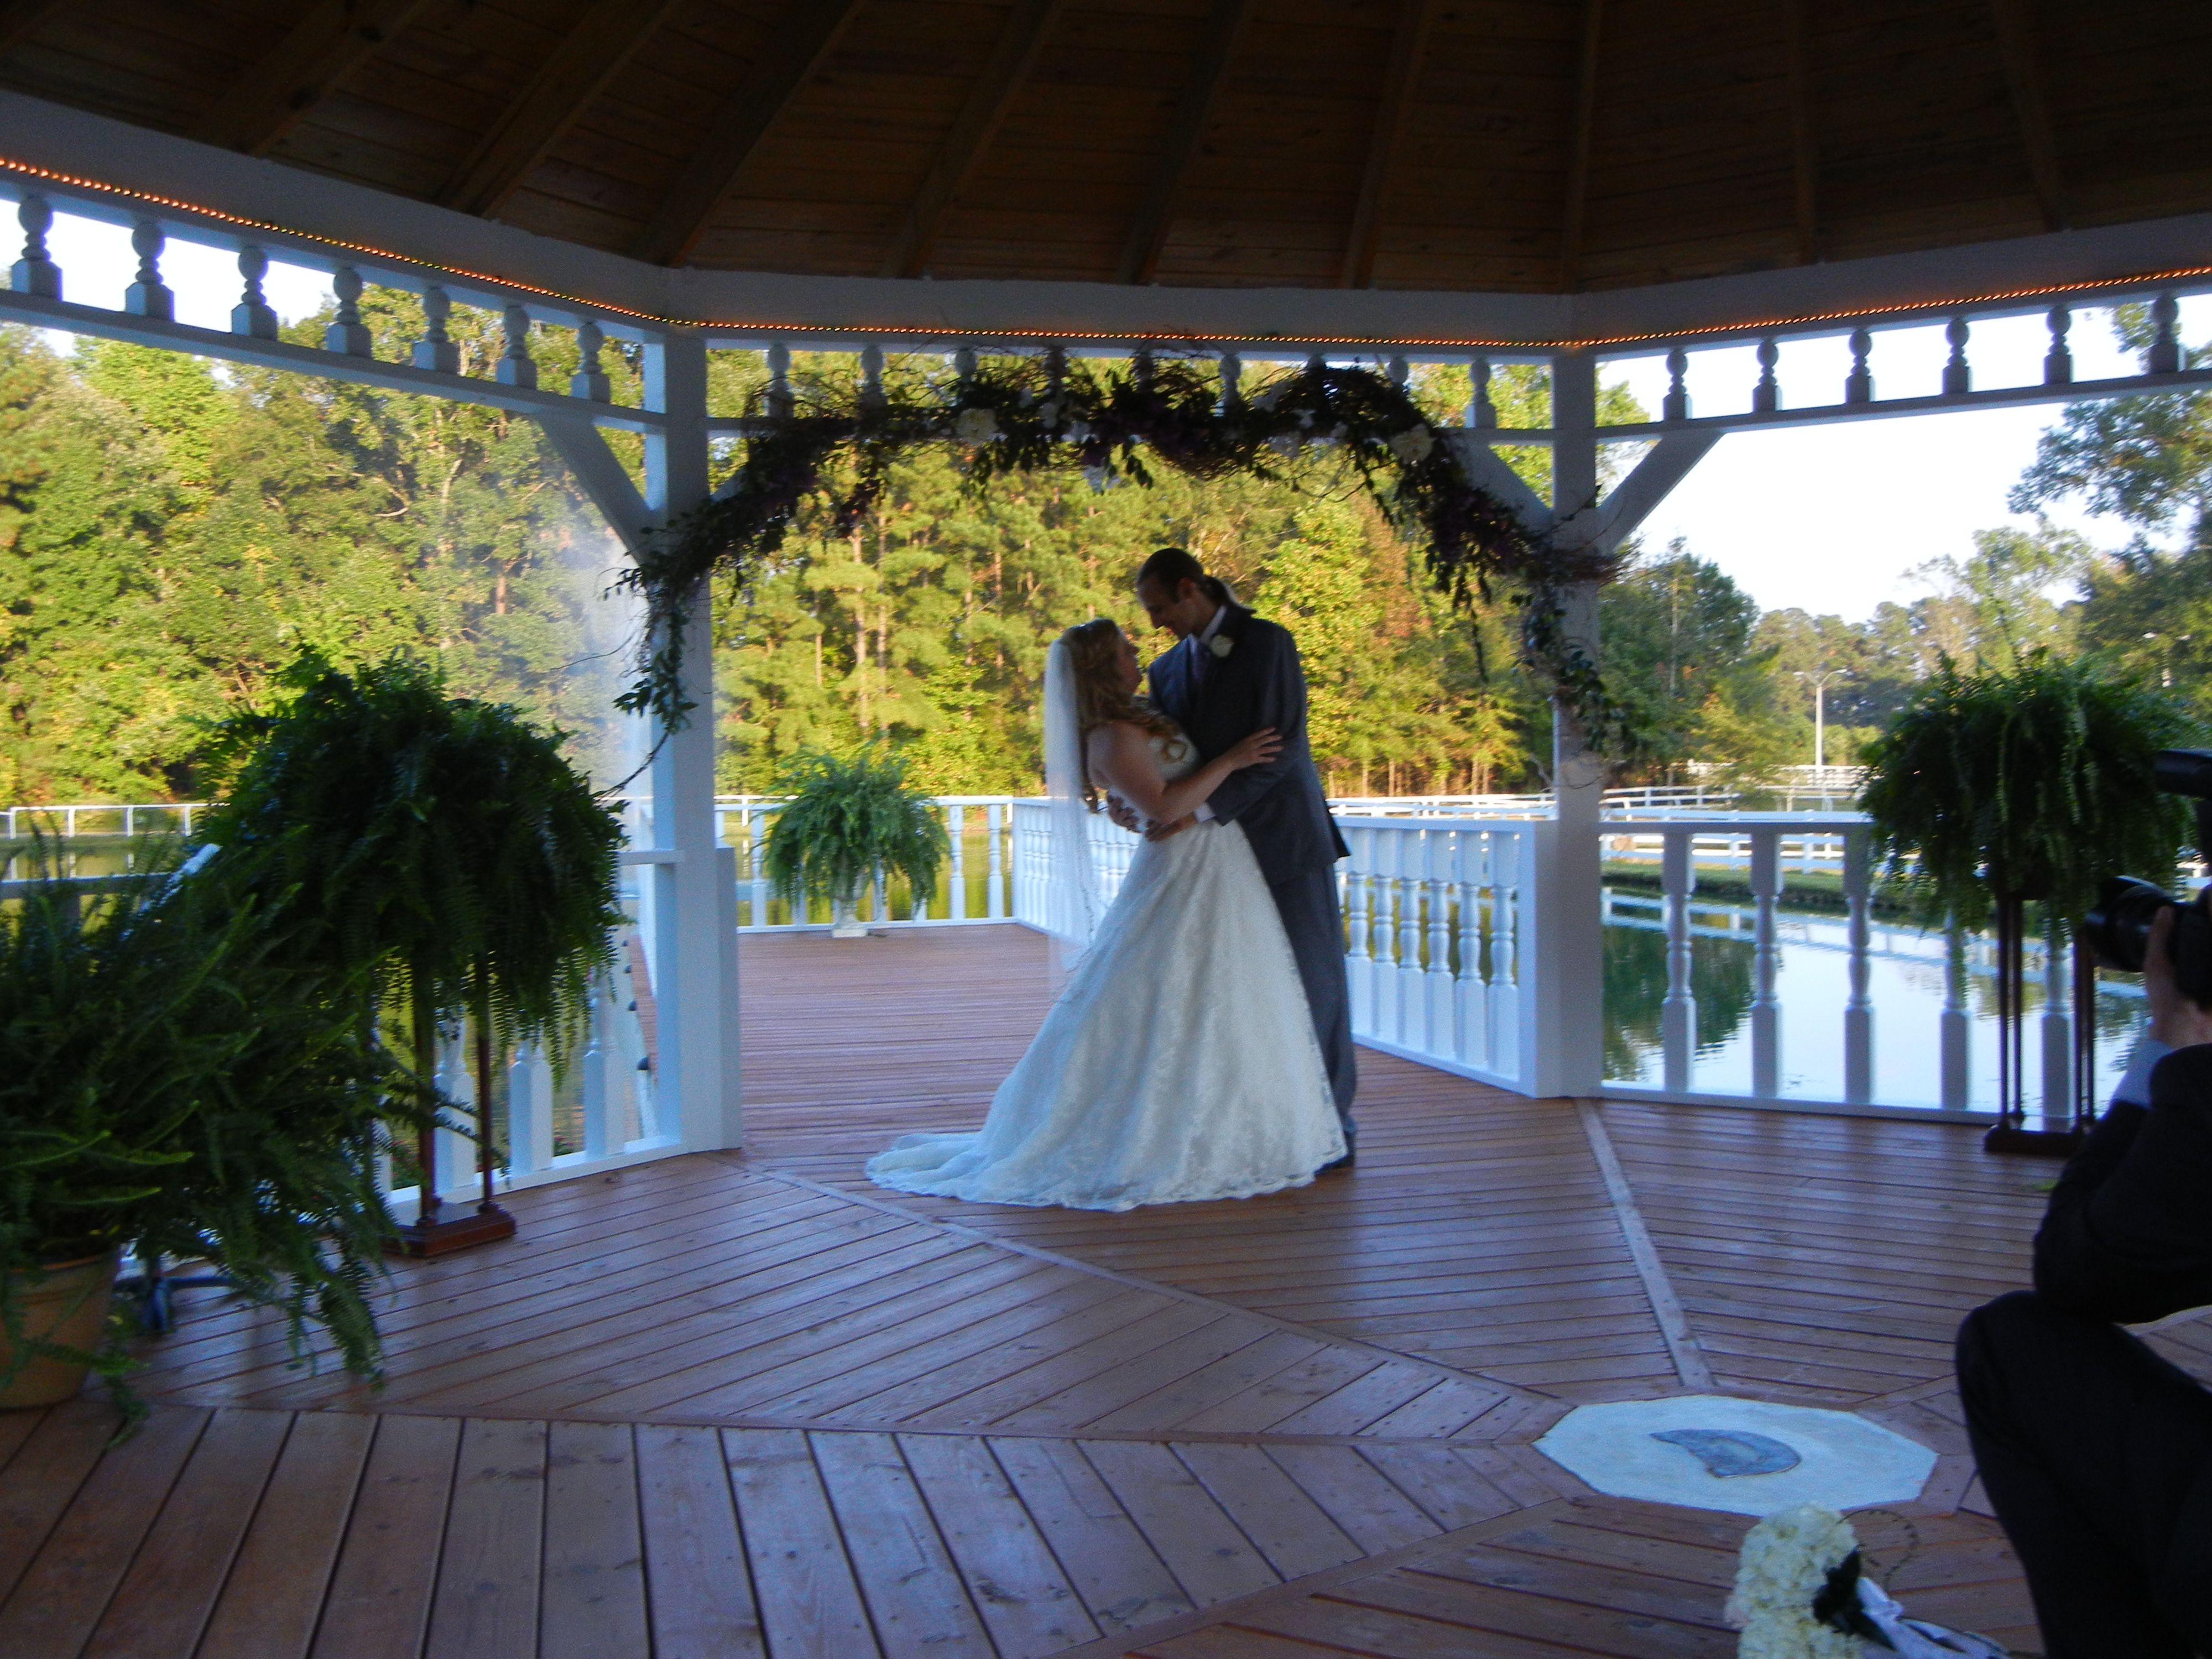 The Dean Plantation Wedding Venue 20 Minutes From Downtown Raleigh